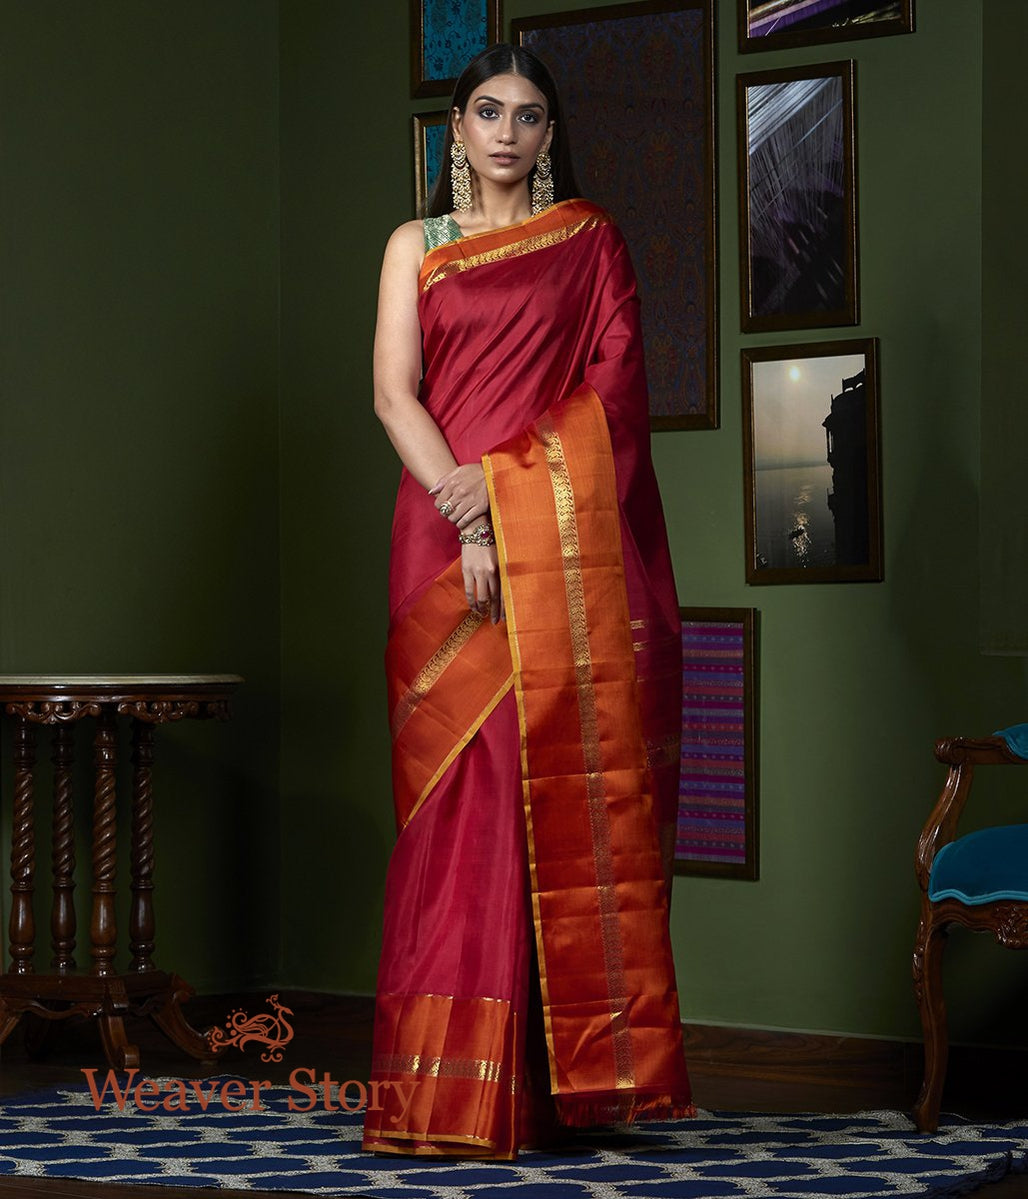 Handwoven Maroon Plain Kanjivaram Orange Broad Border